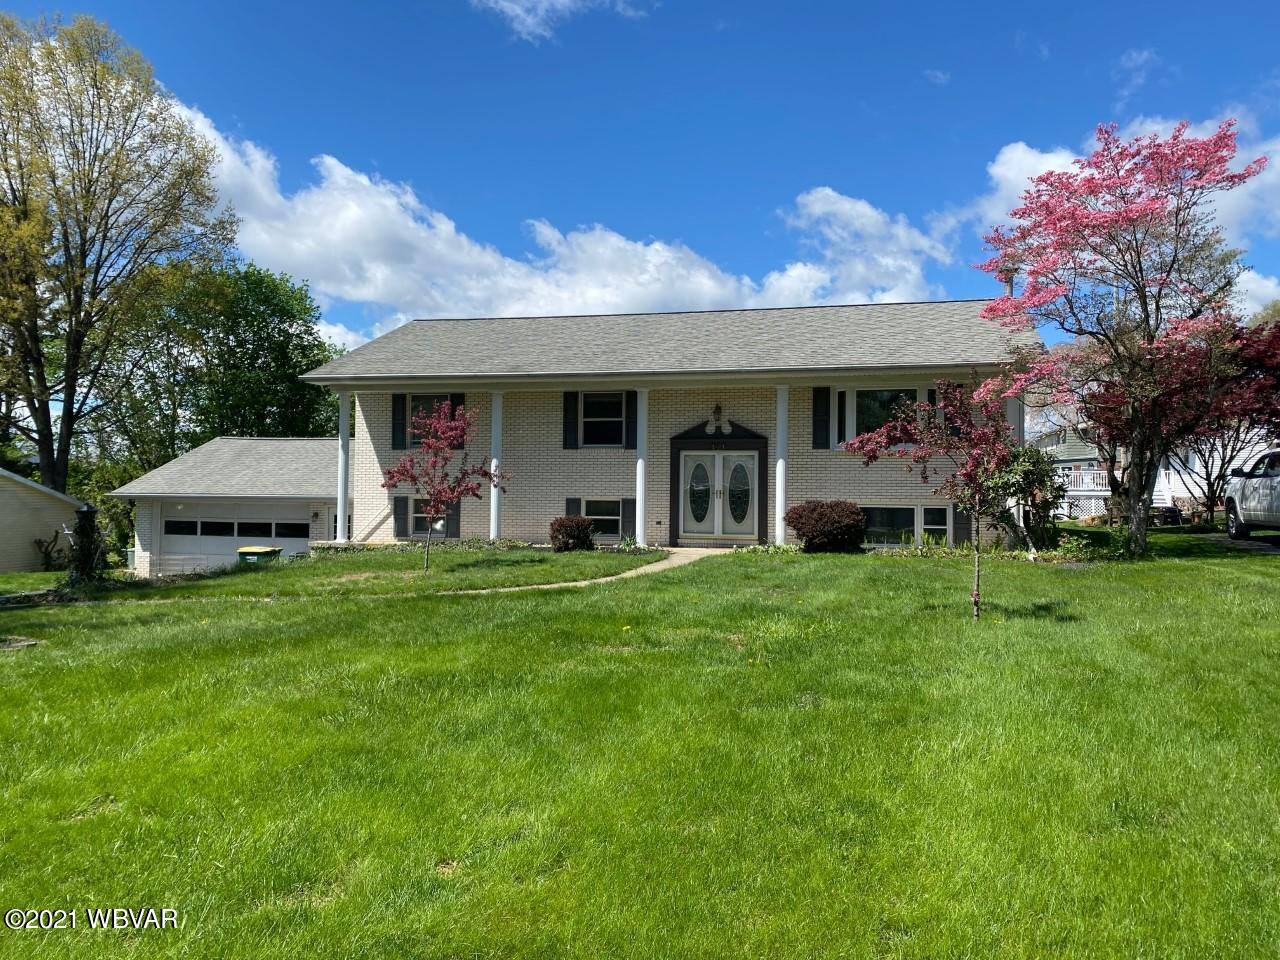 1841 NAST AVENUE, Montoursville, PA 17754, 5 Bedrooms Bedrooms, ,3 BathroomsBathrooms,Residential,For sale,NAST,WB-92424